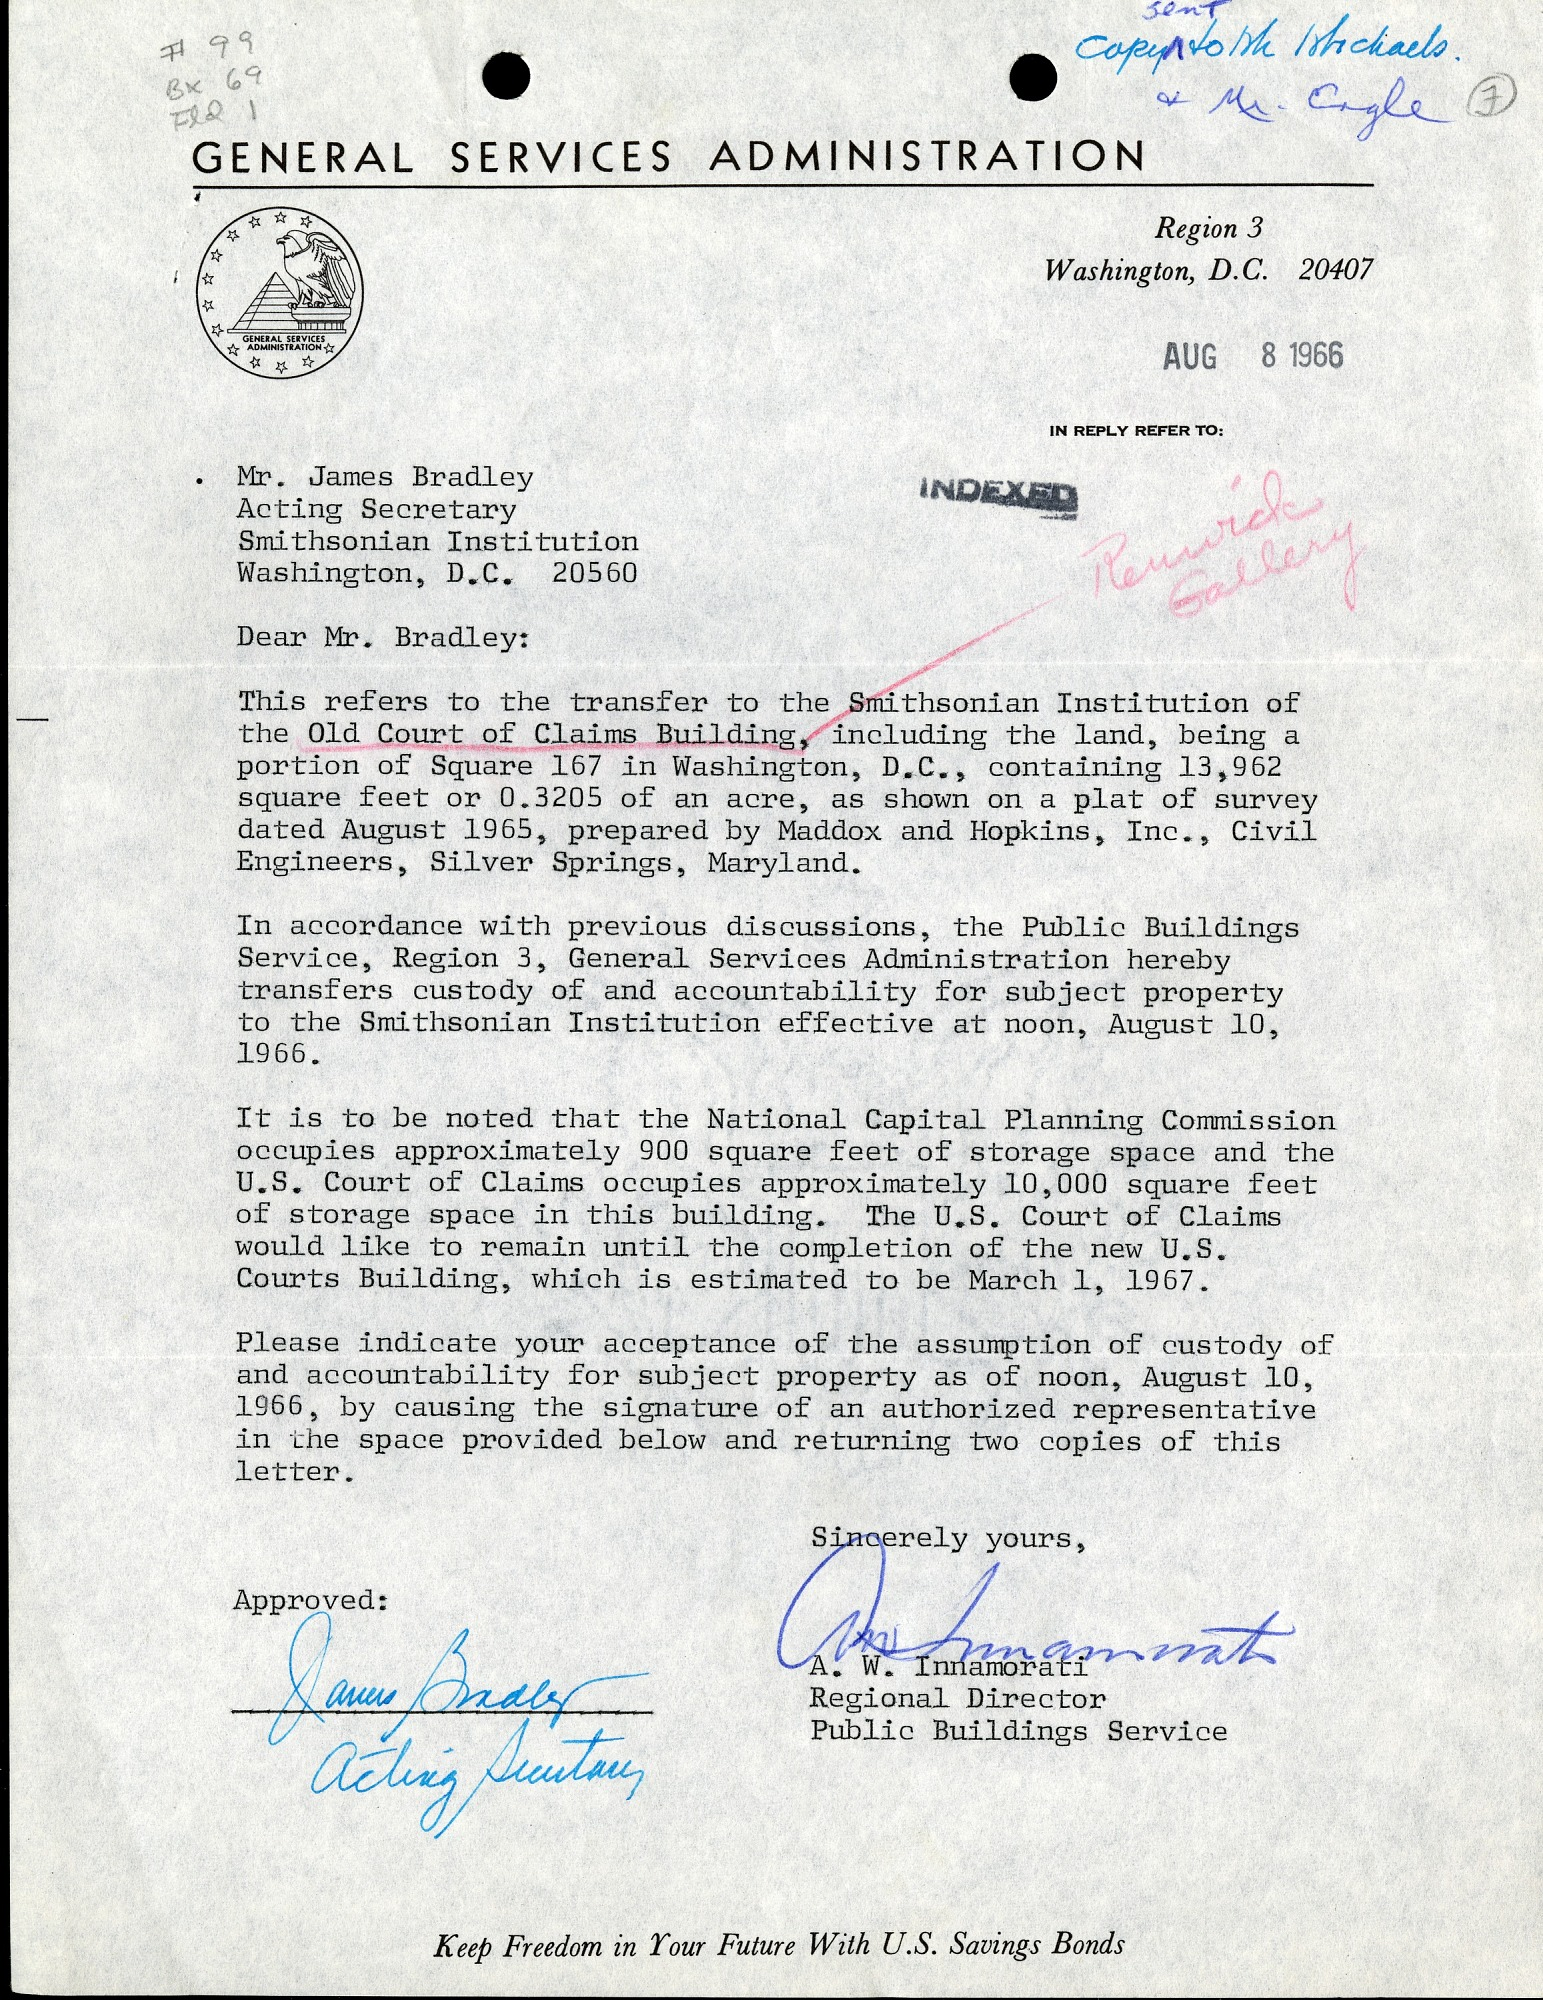 Aug 8 Letter A. W. Innamorati to James Bradley, August 8, 1966, Page 1 of 1